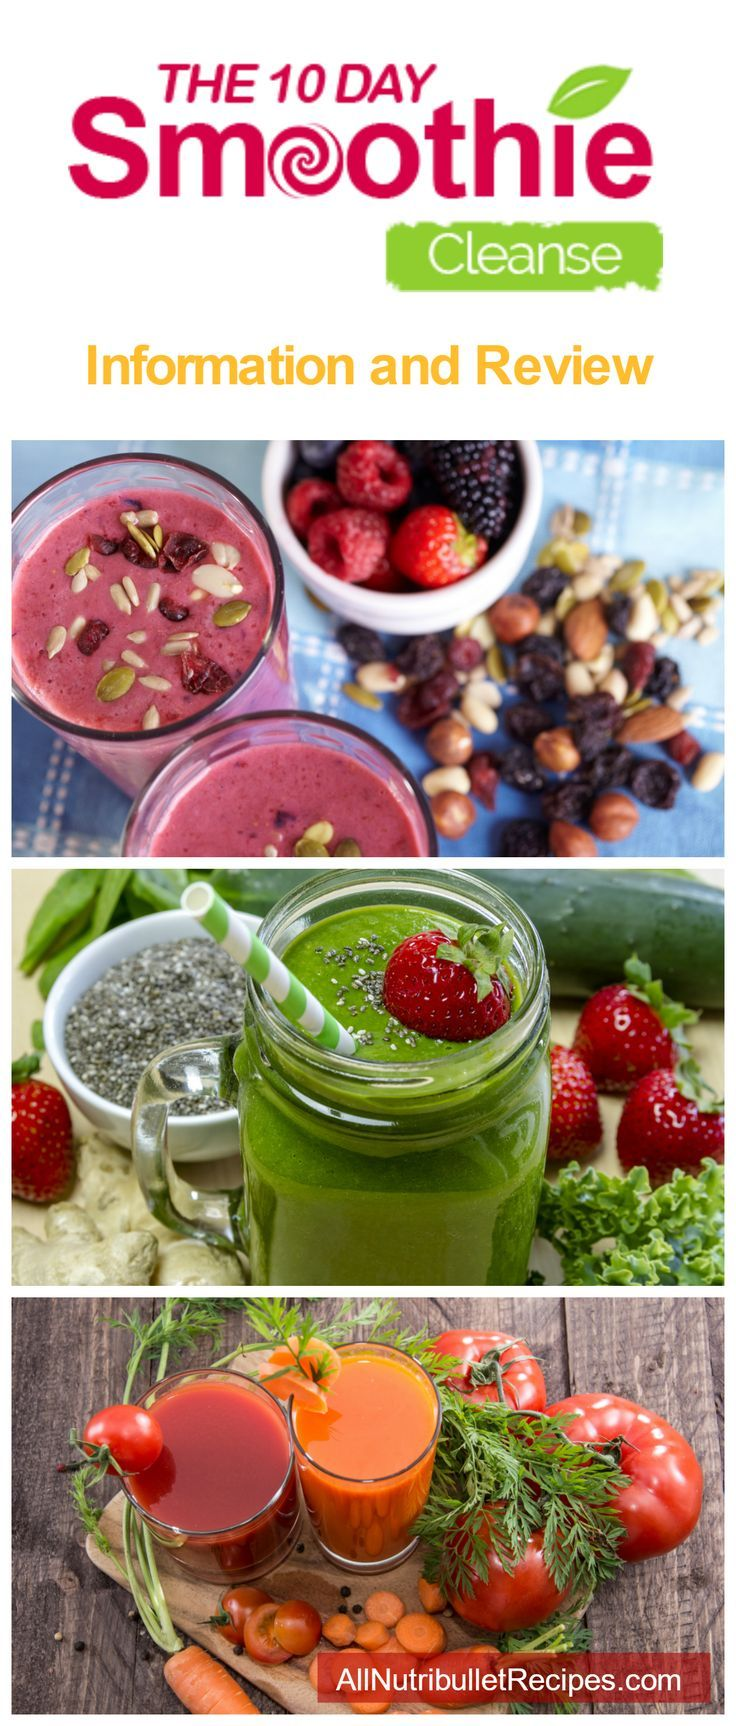 Learn about the popular 10 Day Smoothie Cleanse, a smoothie detox diet for fast and effective weight loss using real healthy food through easy to make healthy smoothie recipes.